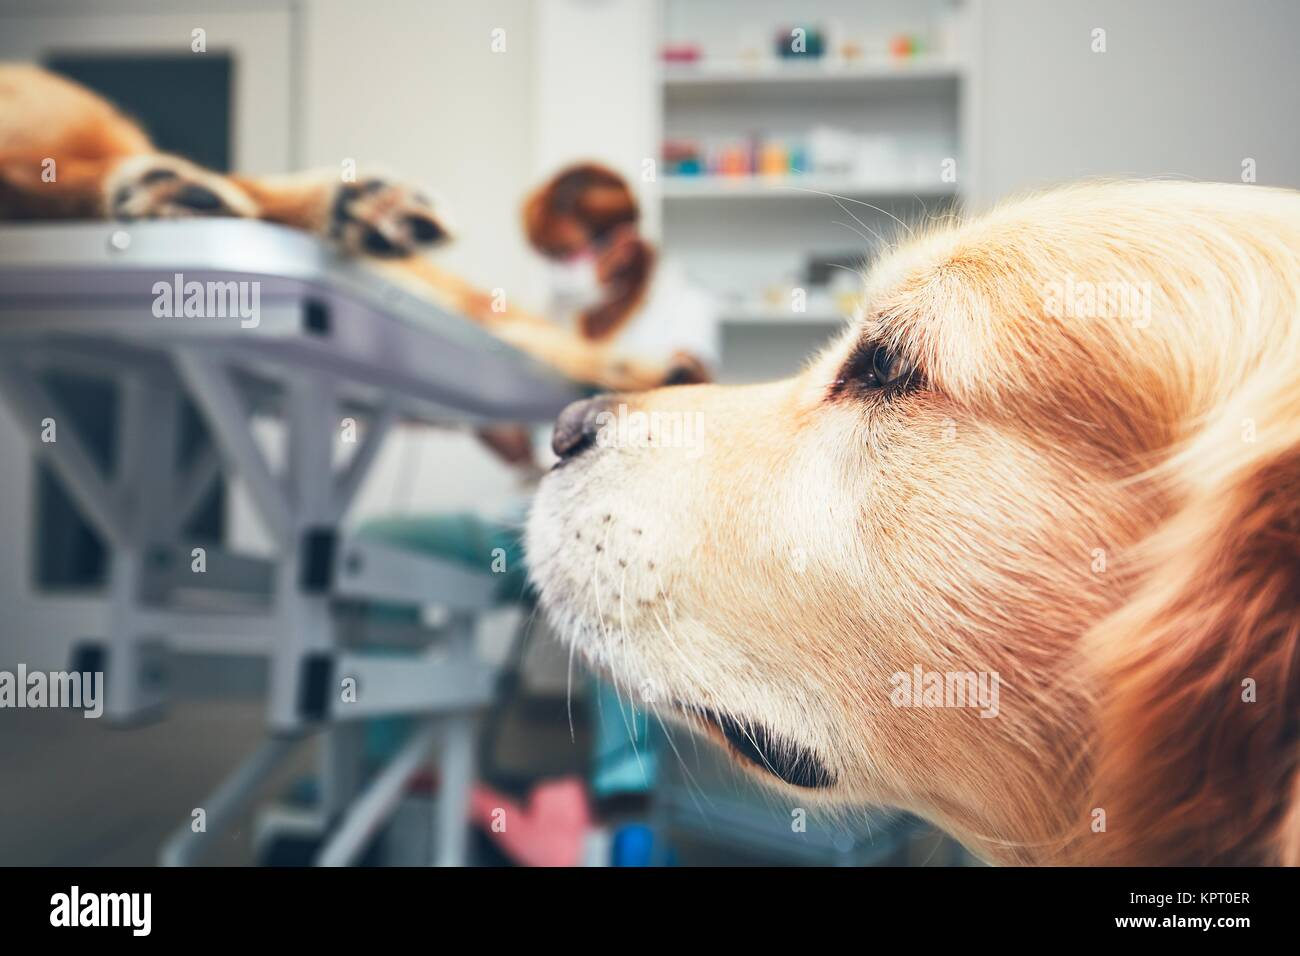 Two brothers of the golden retriever in the animal hospital. Veterinarian preparing the dog for surgery. Thames - Stock Image